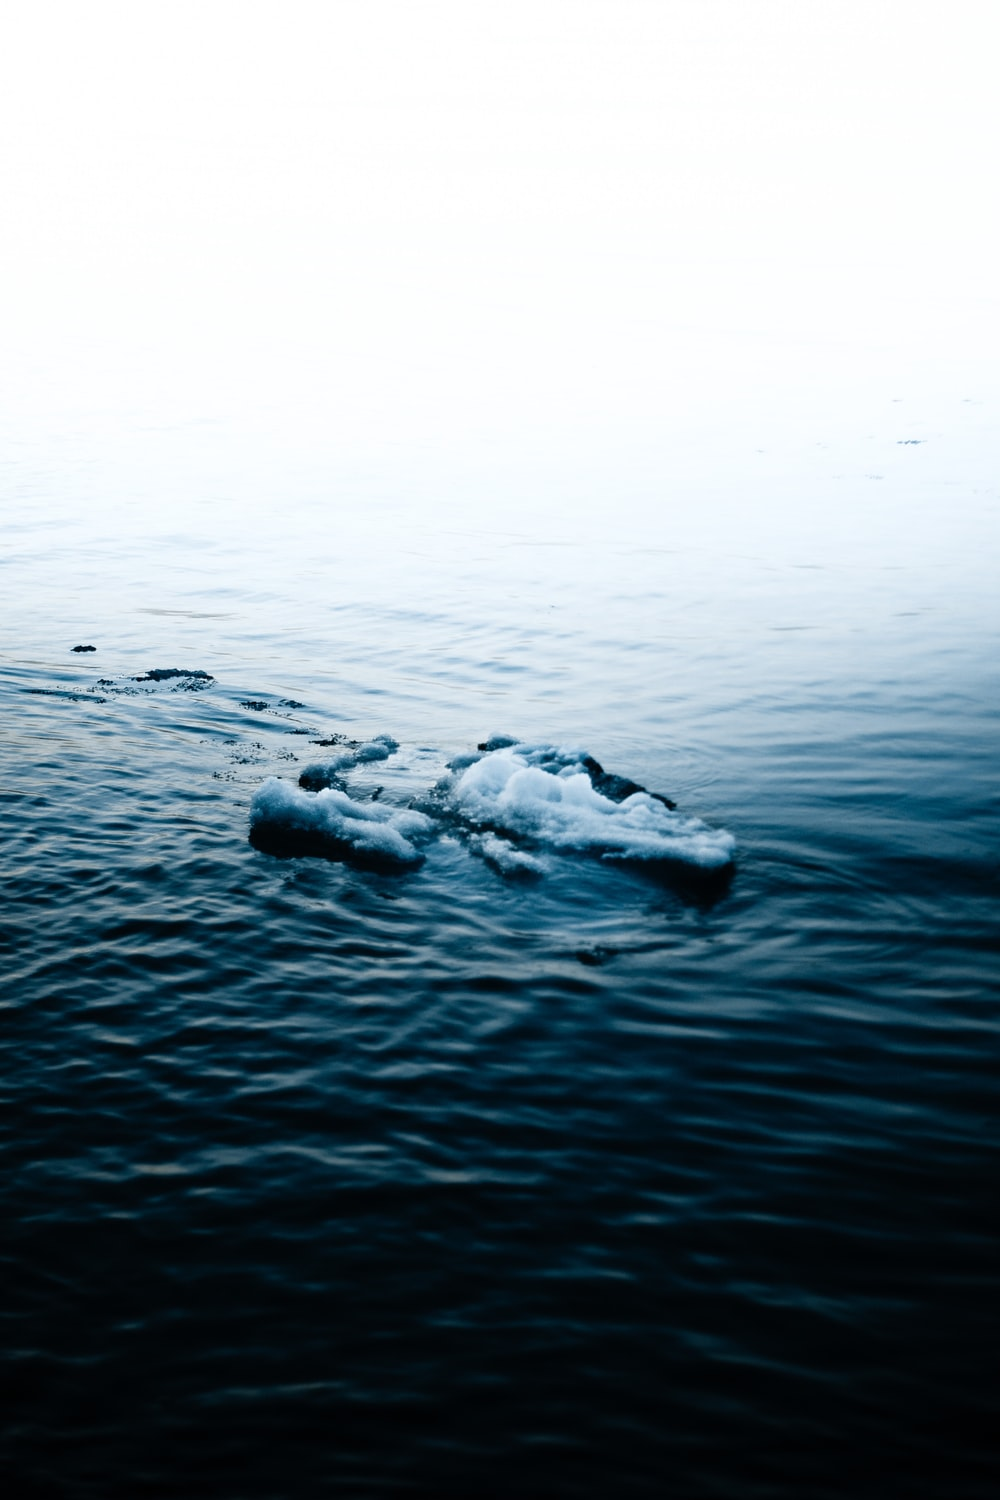 black rock on body of water during daytime